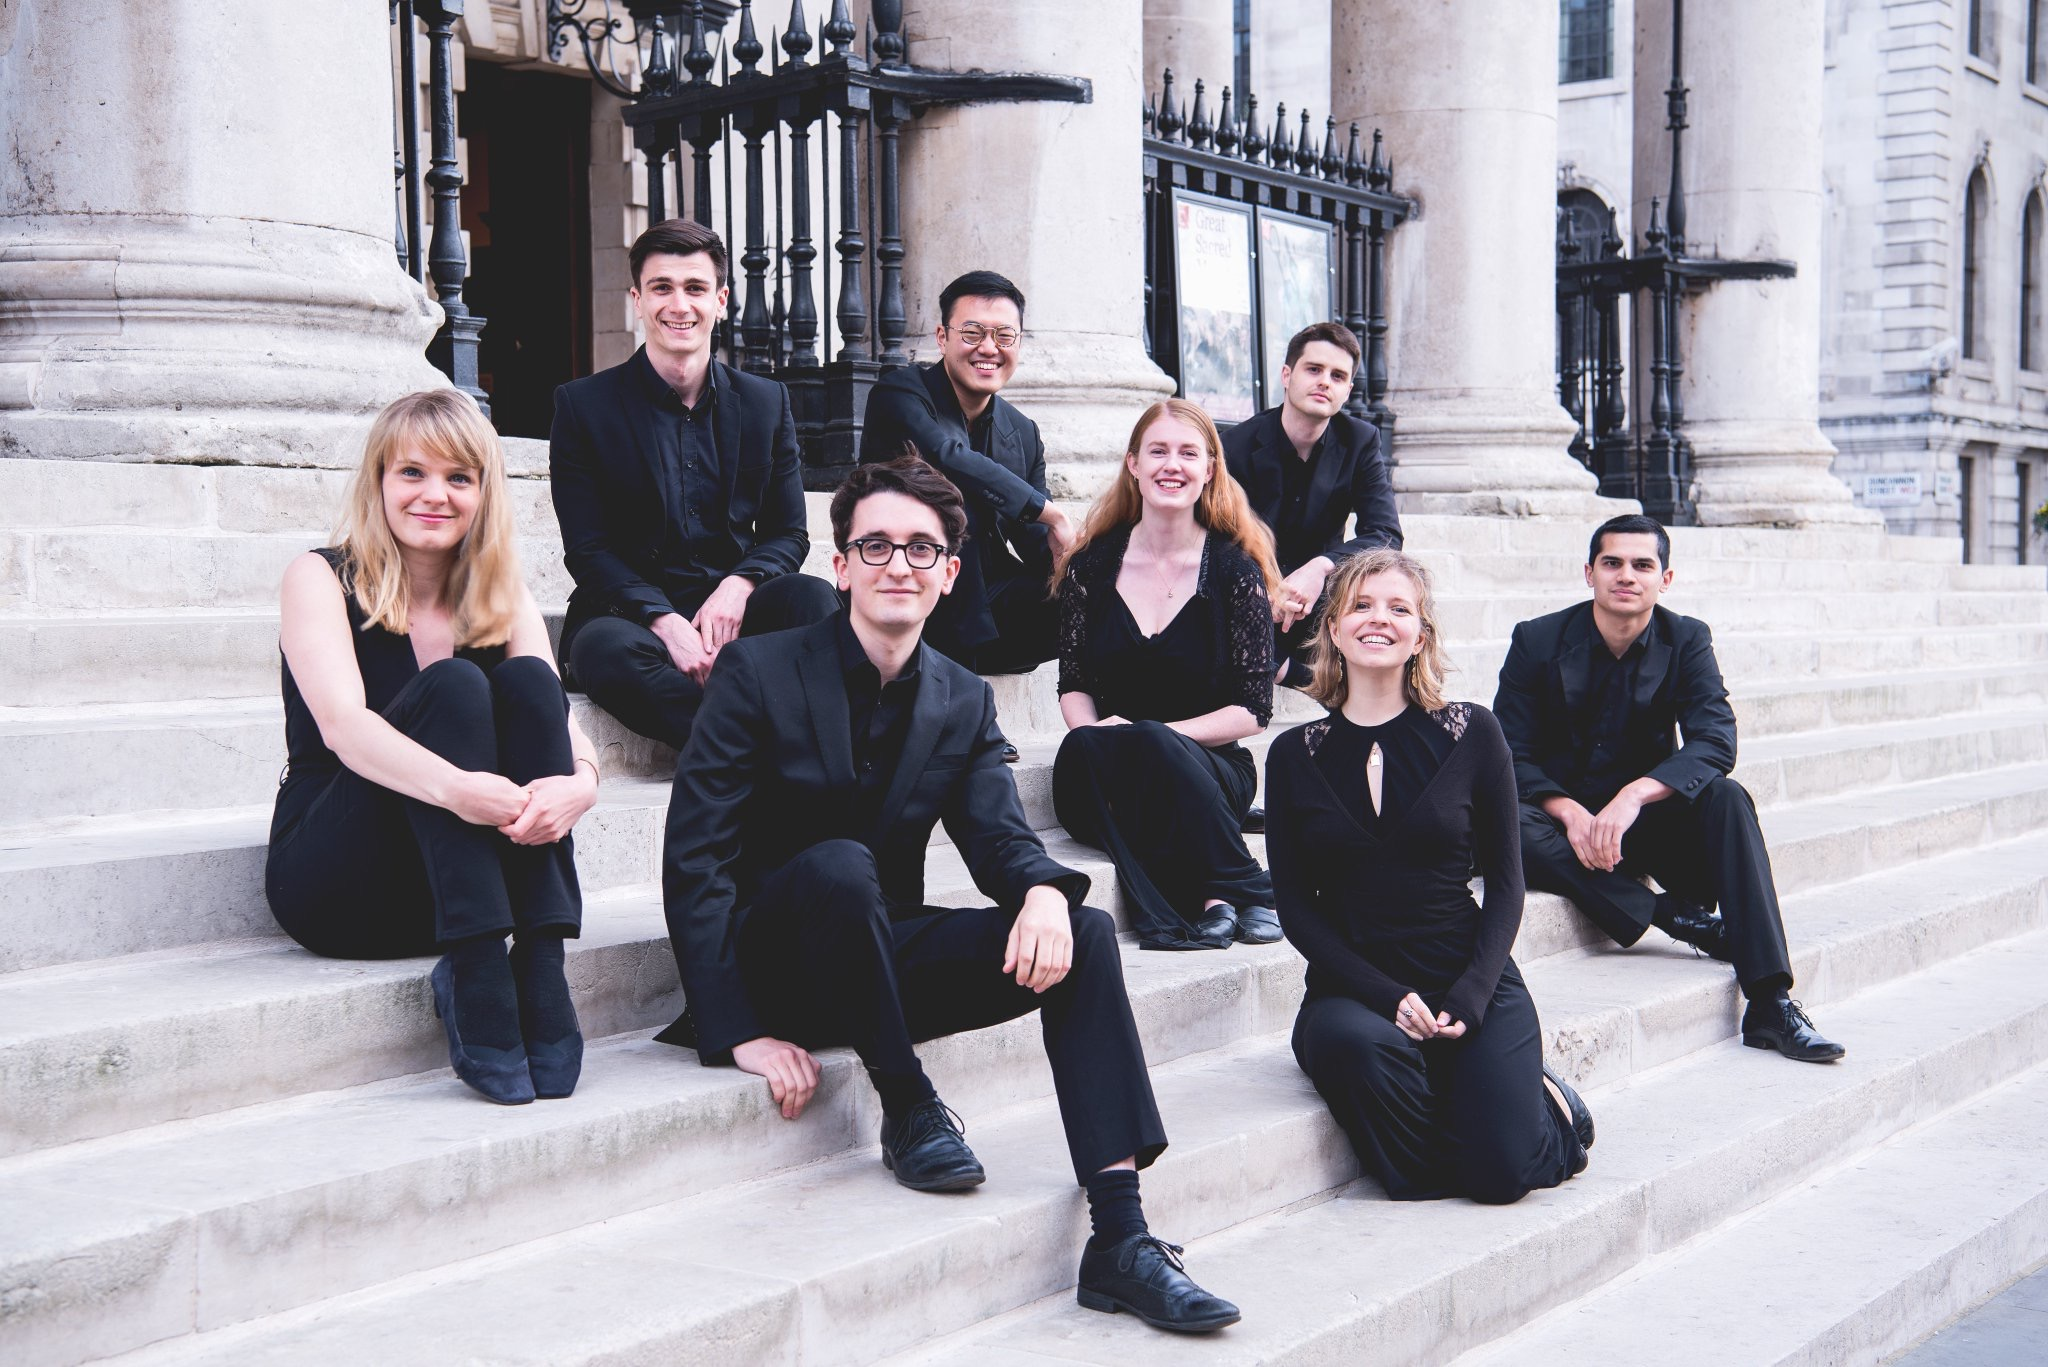 St Martin's Voices will perform at Queen's Cross Church